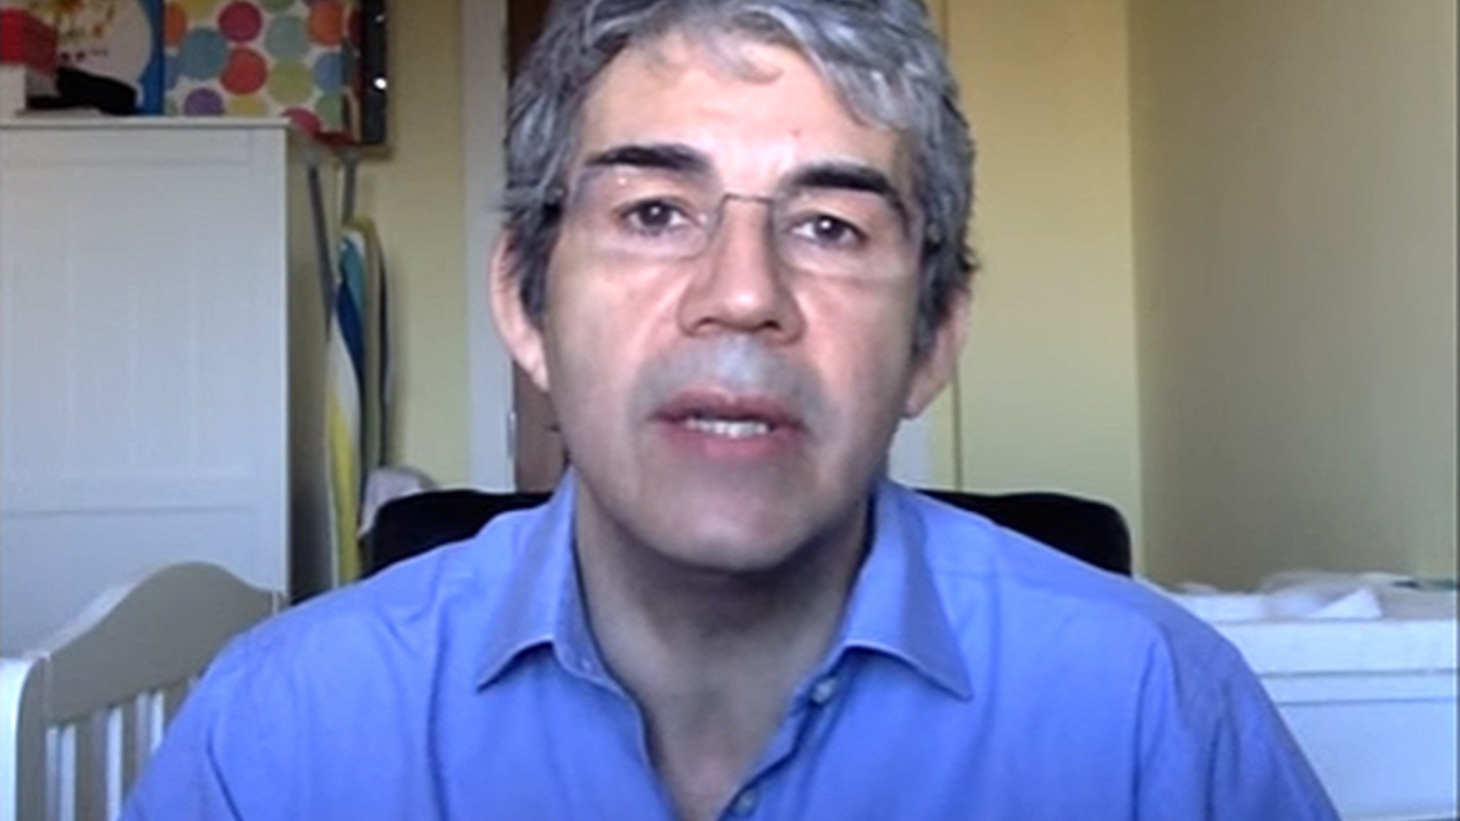 The regime of Syria's Bashar al-Assad has systemically destroyed hospitals and assassinated doctors thought to sympathize with rebels. In the process, entire families have died from the lack of care. We hear about David Nott, a British surgeon who's risked his own life teaching desperate people how to give medical treatment.